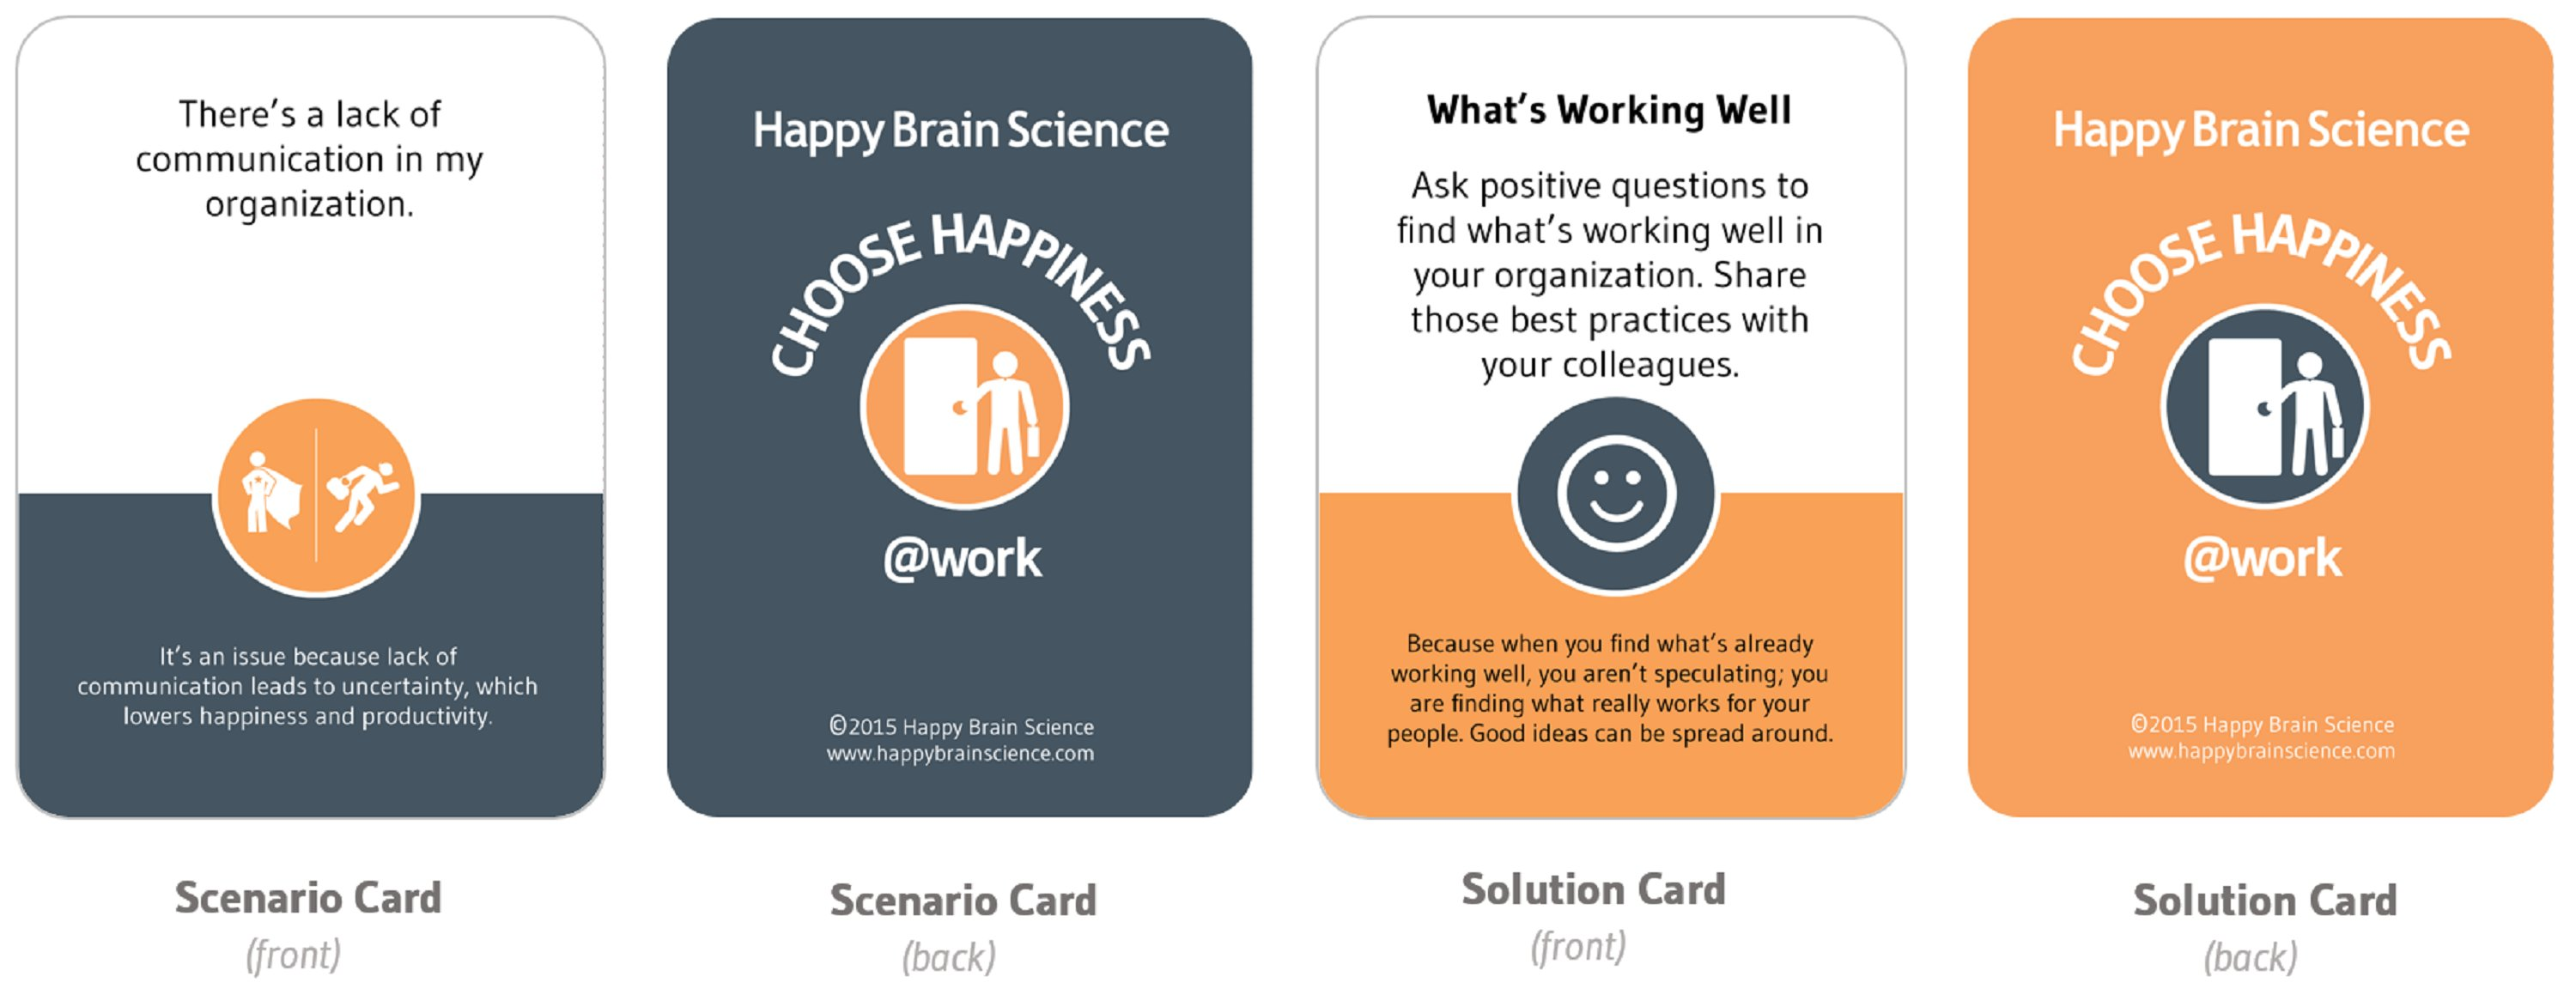 Choose Happiness at Work Cards - images